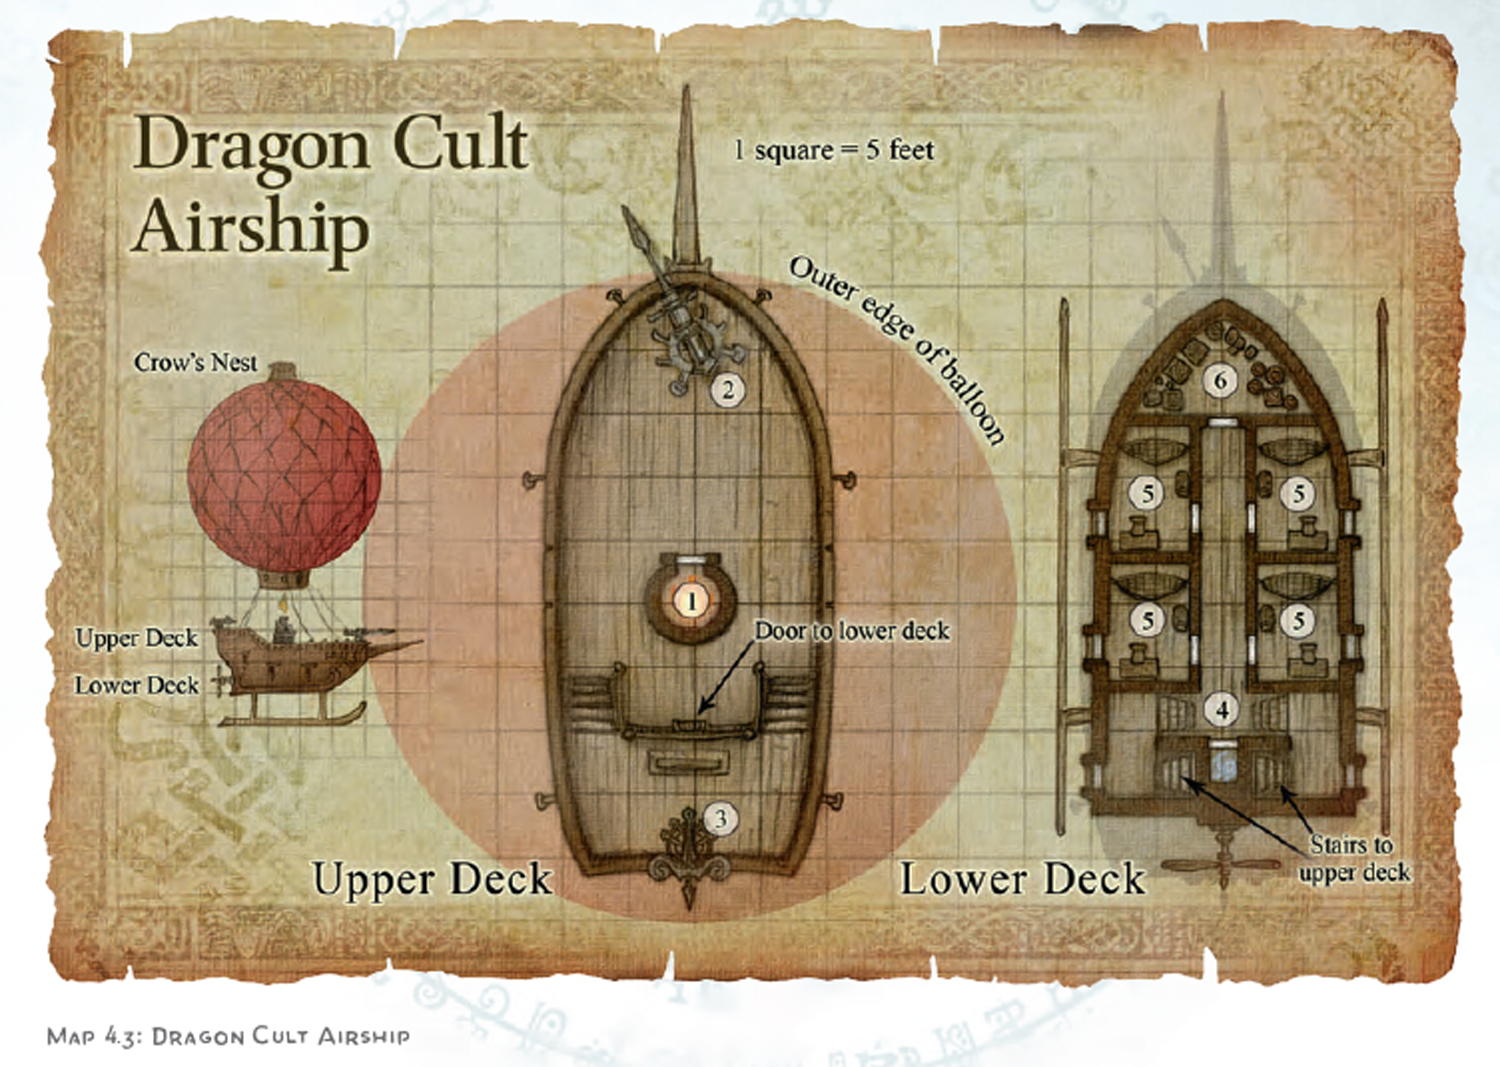 An Inside Look at Dungeons & Dragons' New GiantFilled